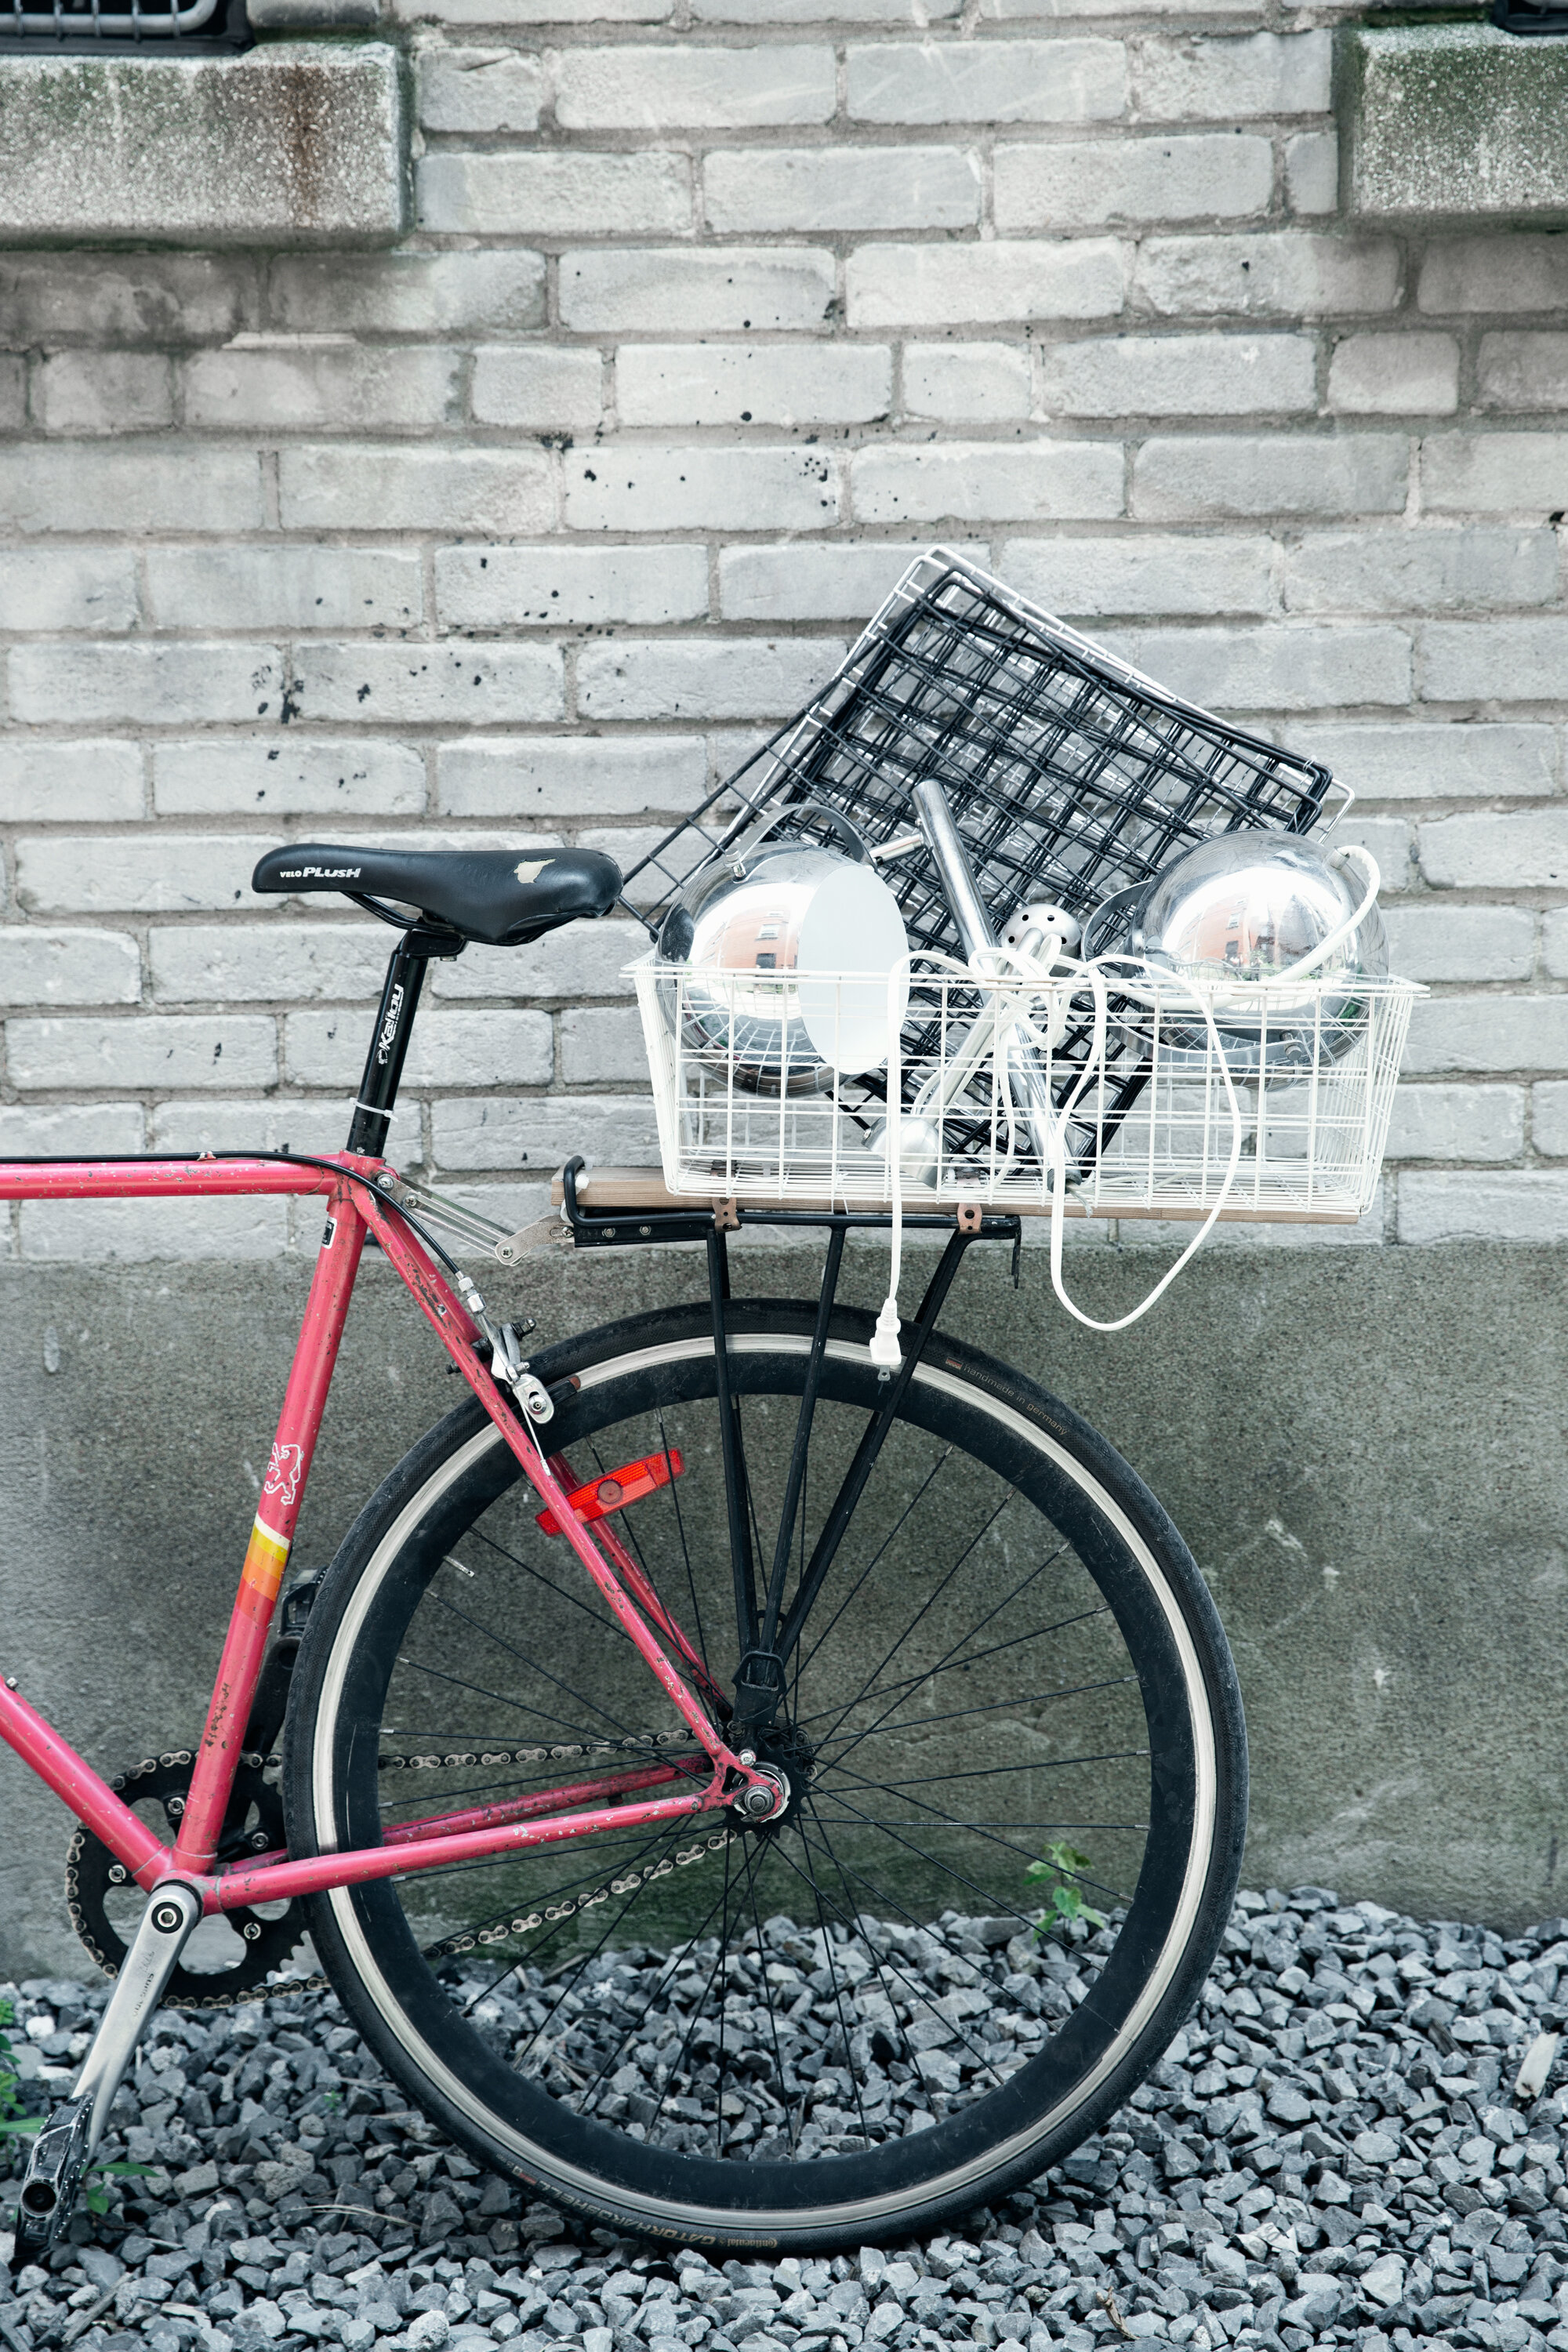 - we prefer to ride our bikes during our treasure hunts